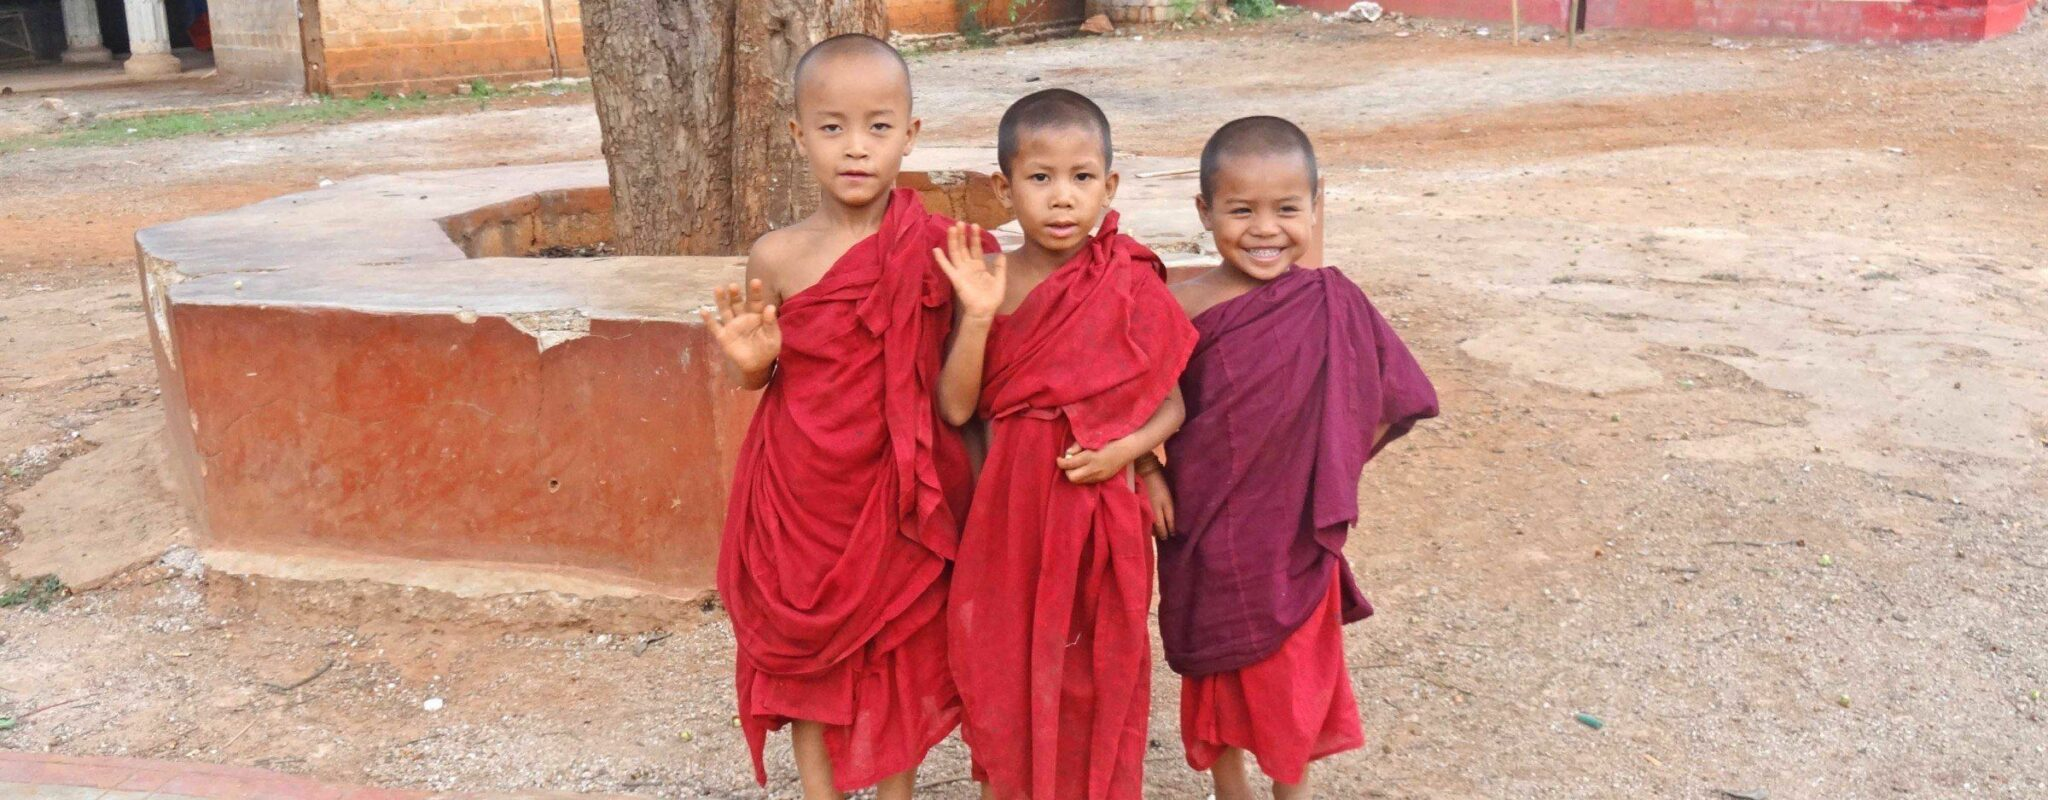 Child monks - A picture book of Burma